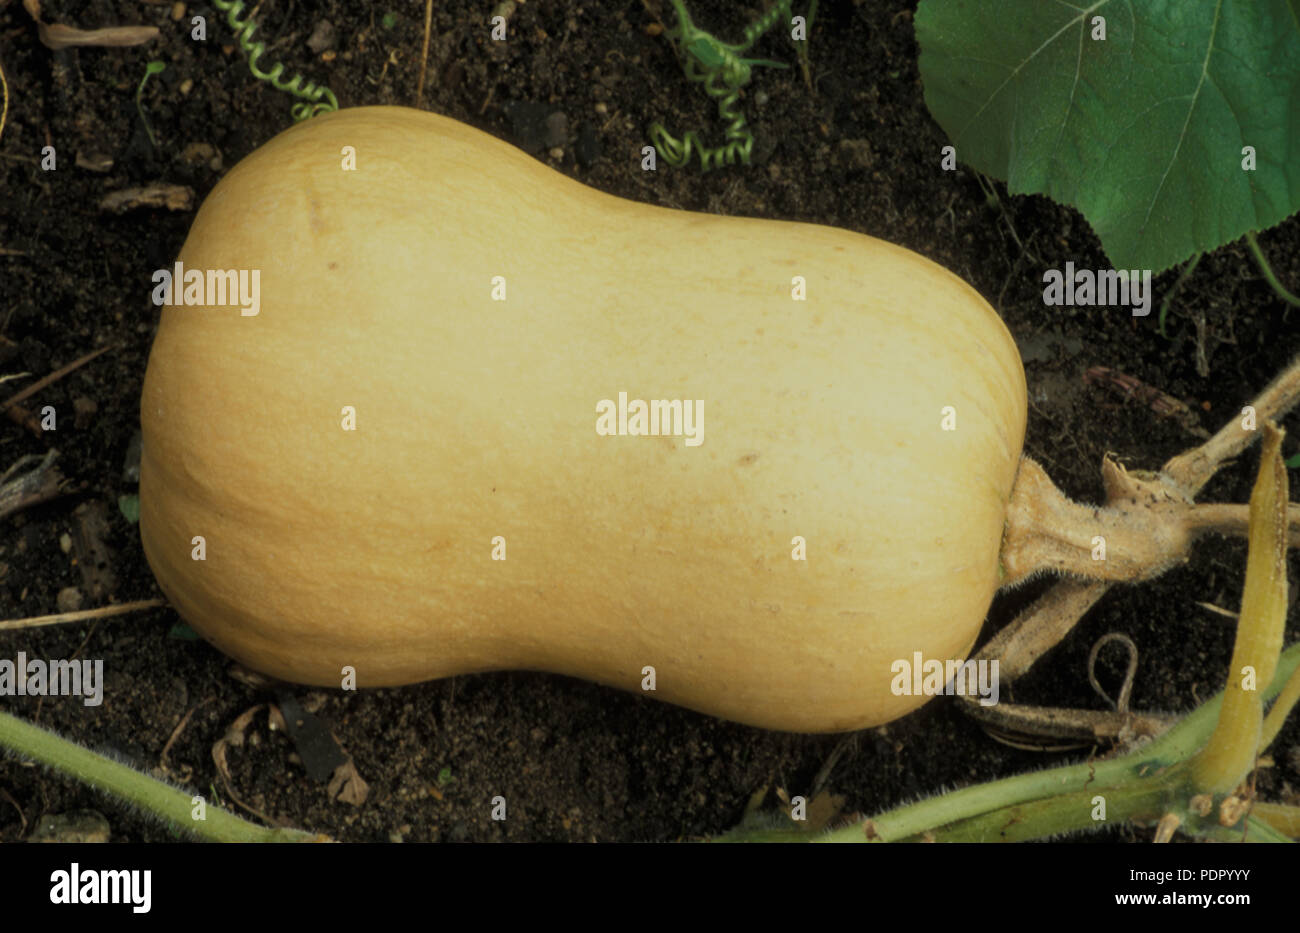 BUTTERNUT PUMPKINS GROWING (CUCURBITA MOSCHATA) ALSO KNOWN AS BUTTERNUT SQUASH. CUCURBITACEAE - Stock Image